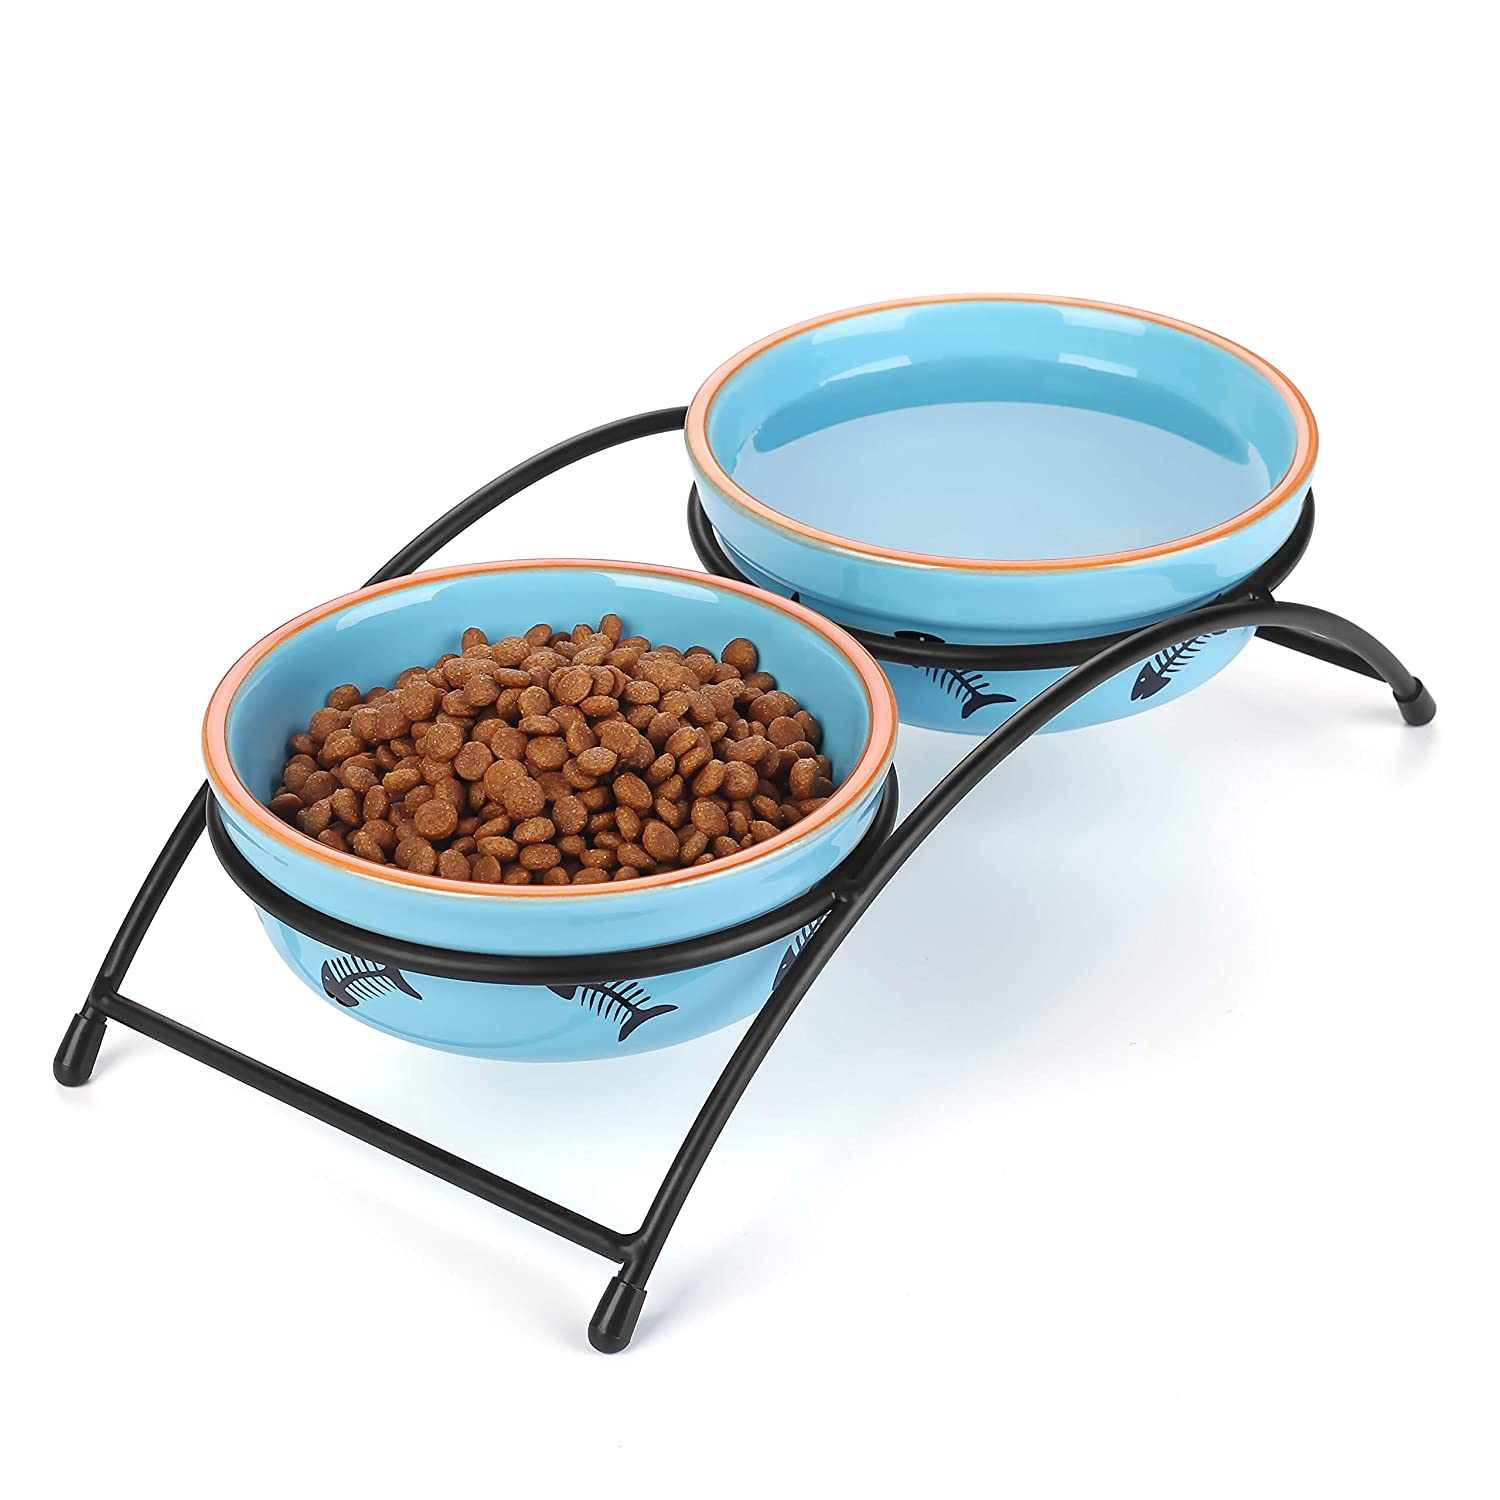 Y YHY Ceramic Raised Pet Cat Bowls, 12 Ounces Elevated Food or Water Bowls, Double Cat Dishes, Gift for Cat, Fish Bone Design, Blue